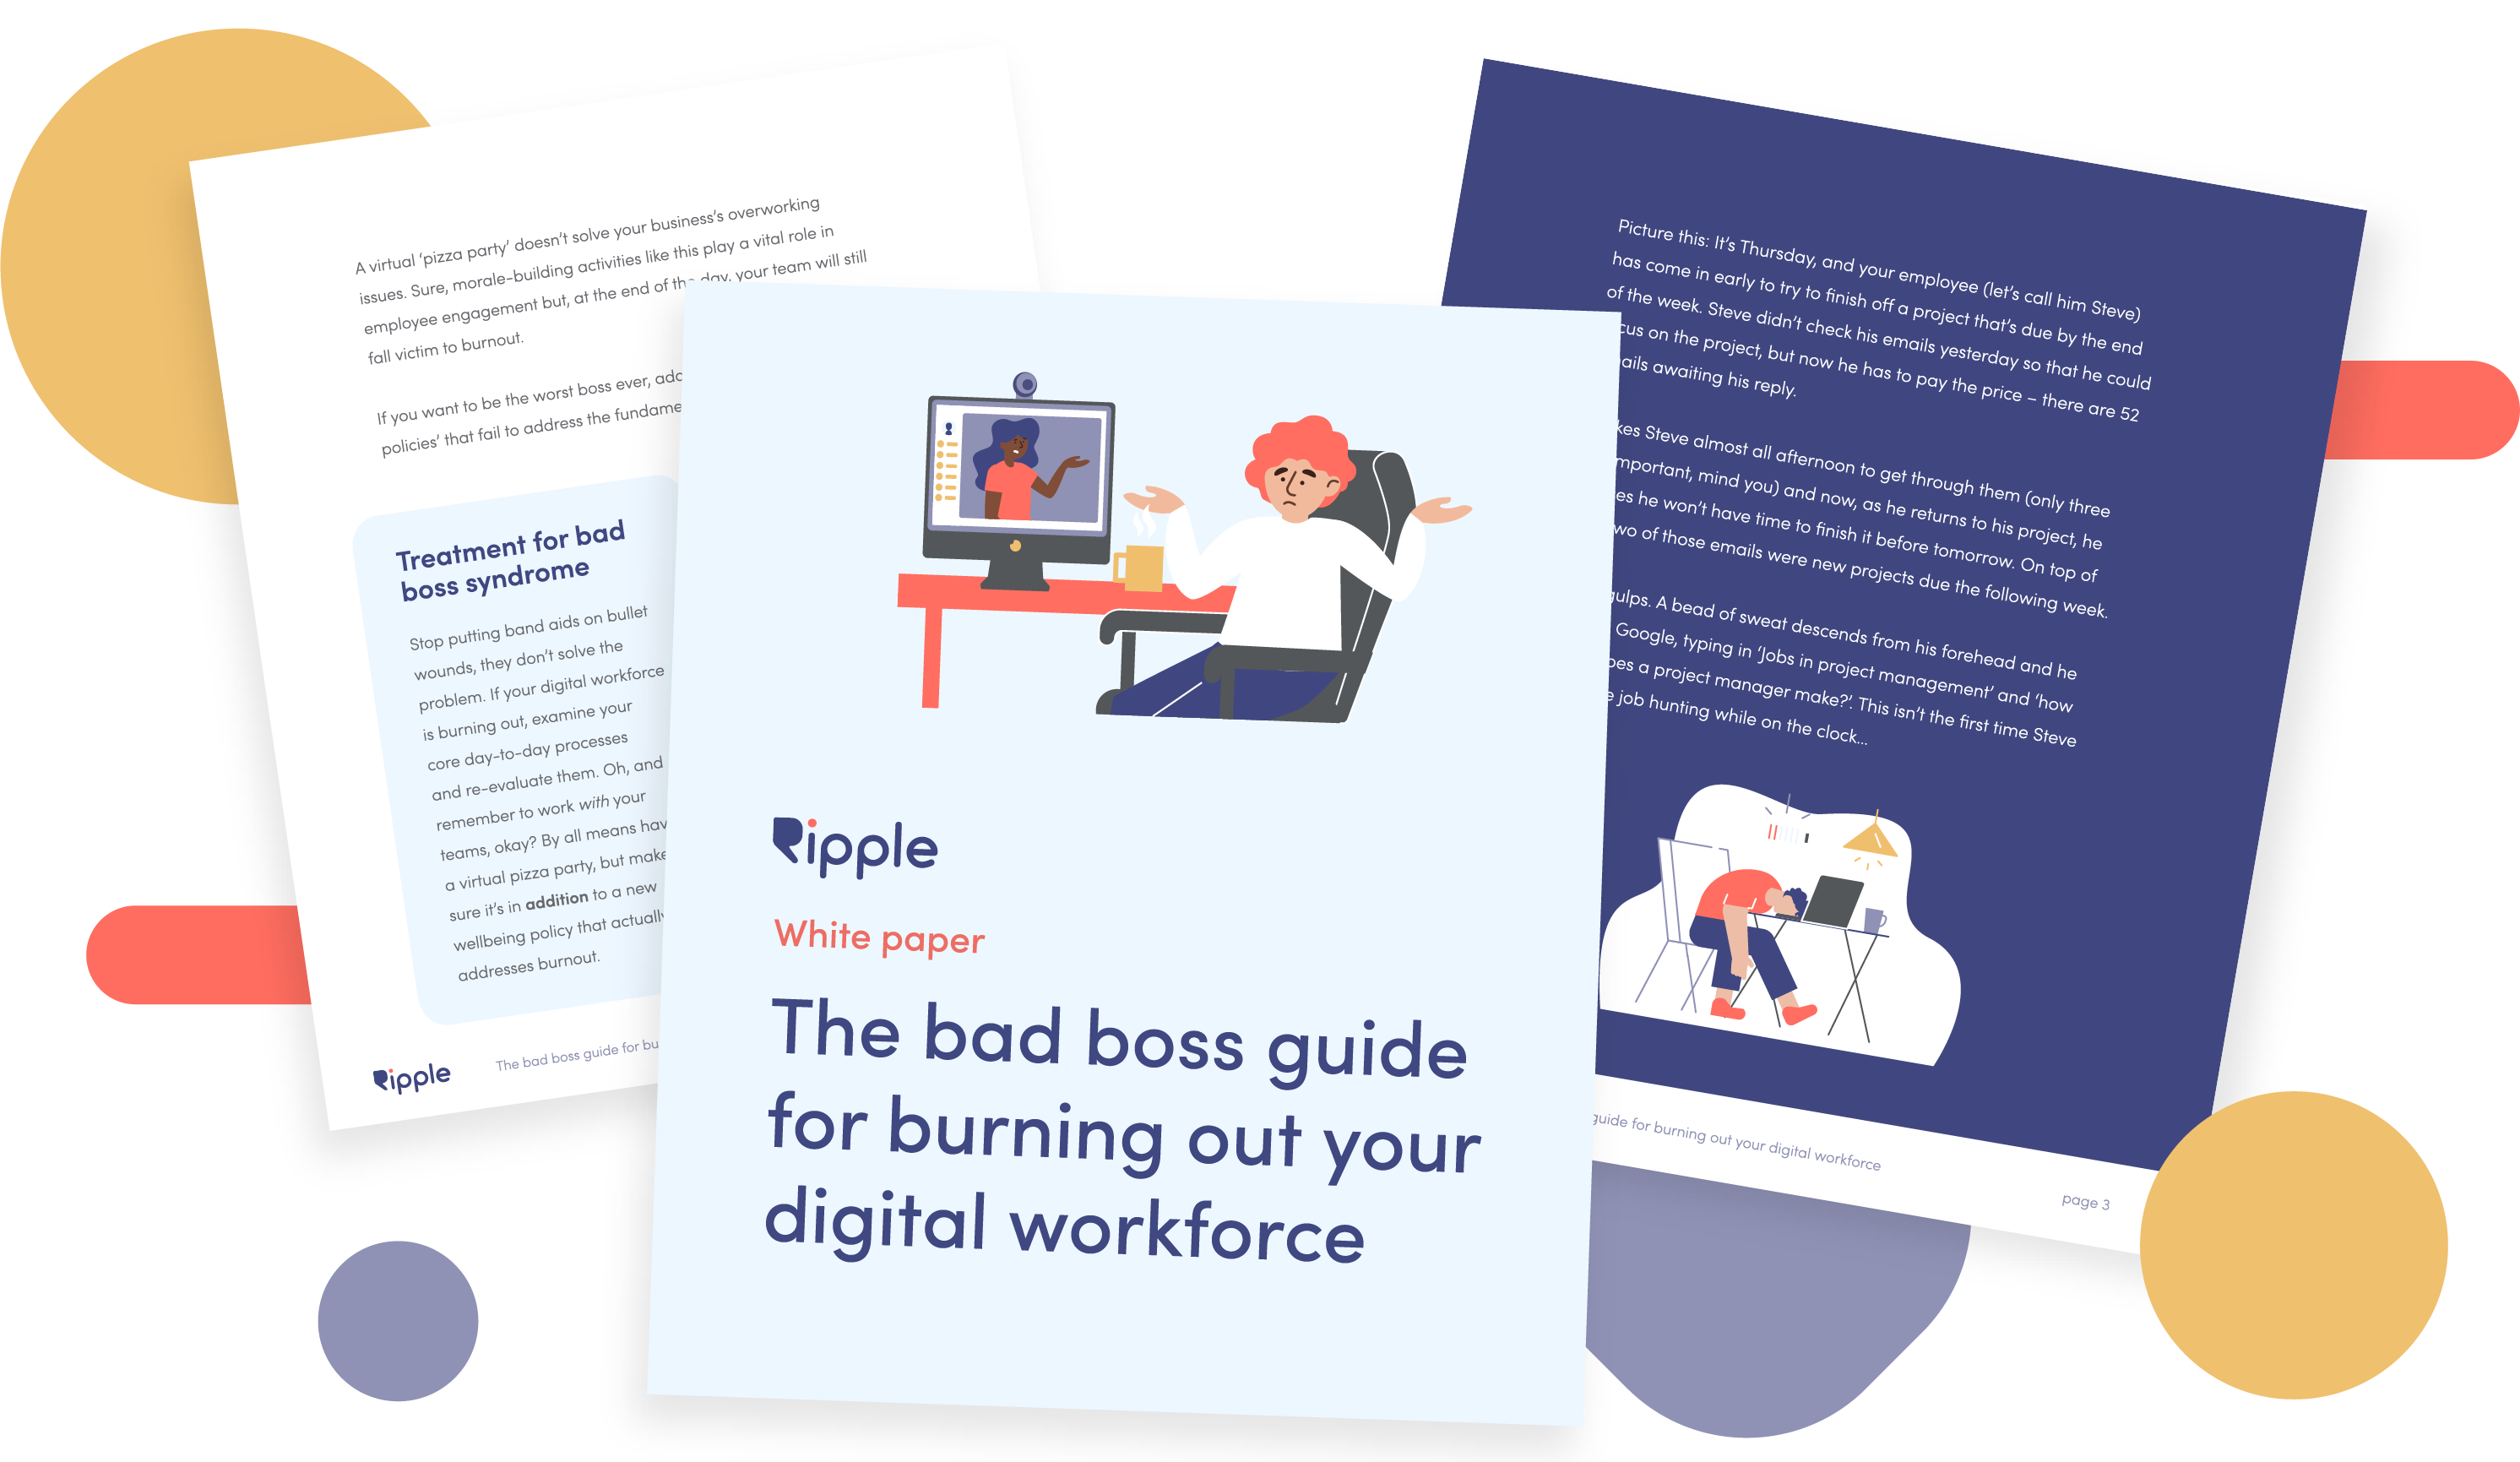 The bad boss guide for burning out your digital workforce simple mock up-01